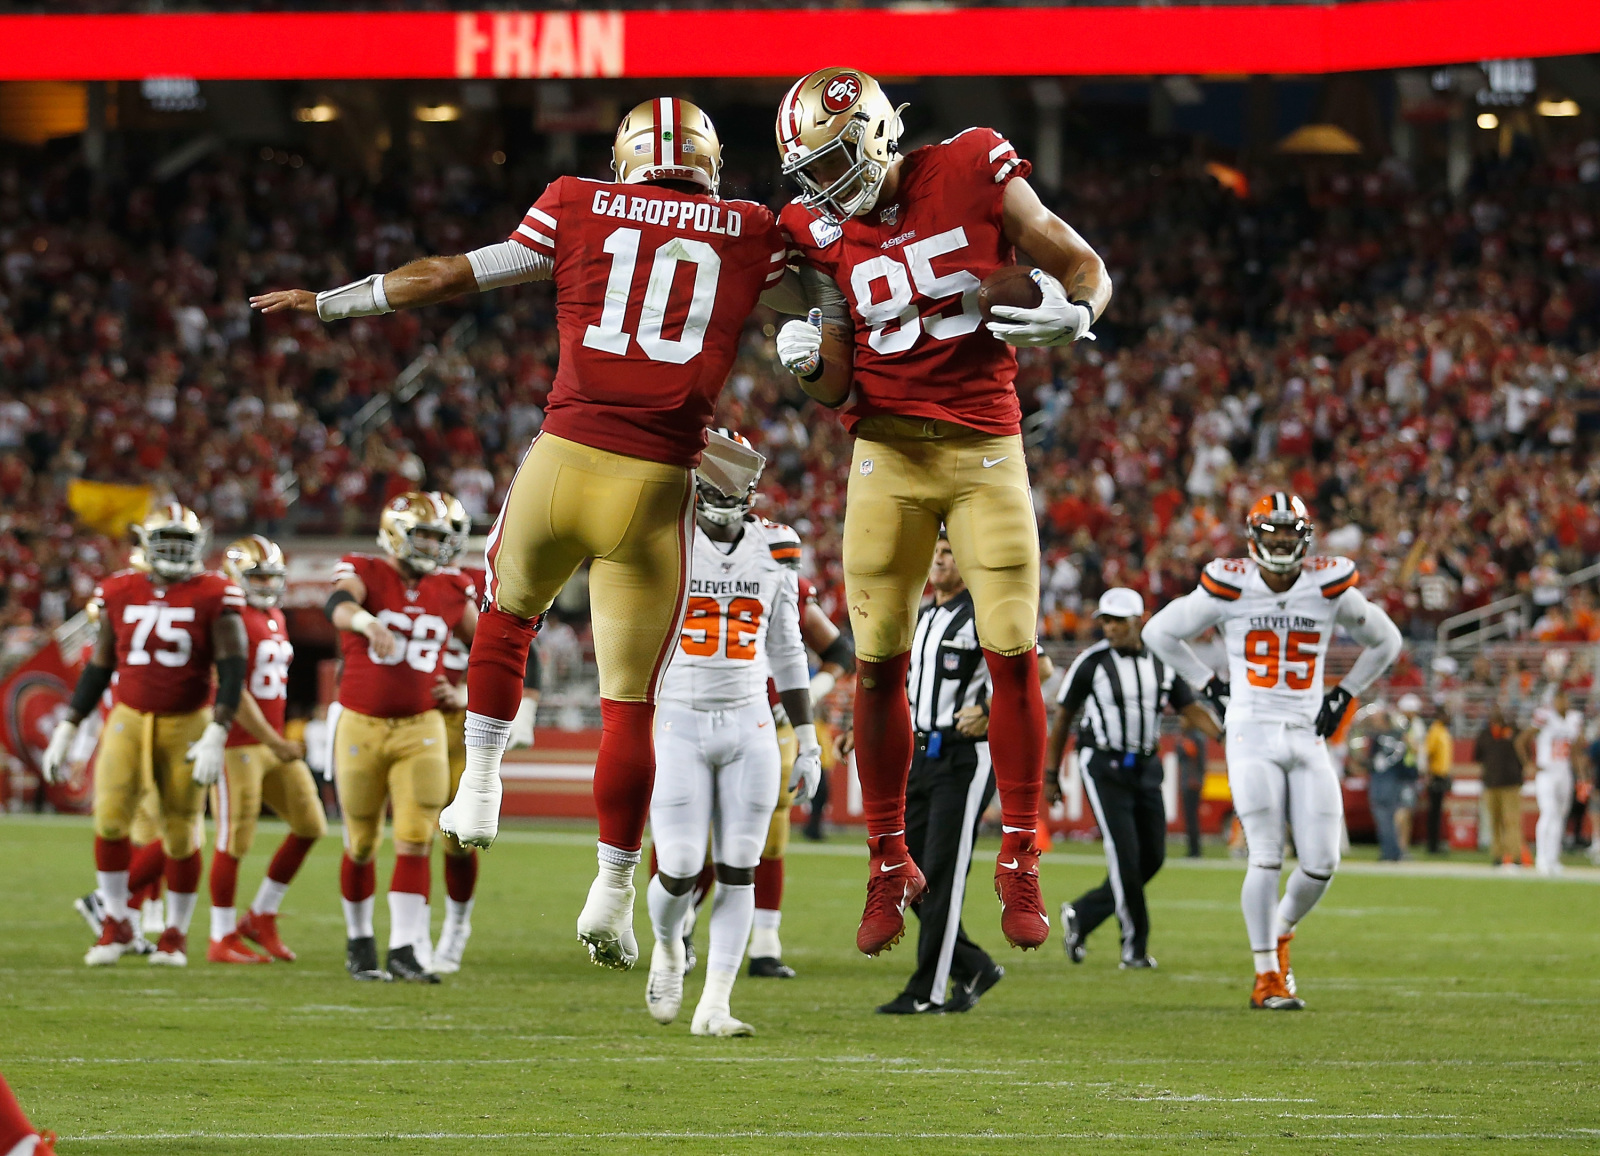 3 49ers players who could win NFL MVP award in 2020